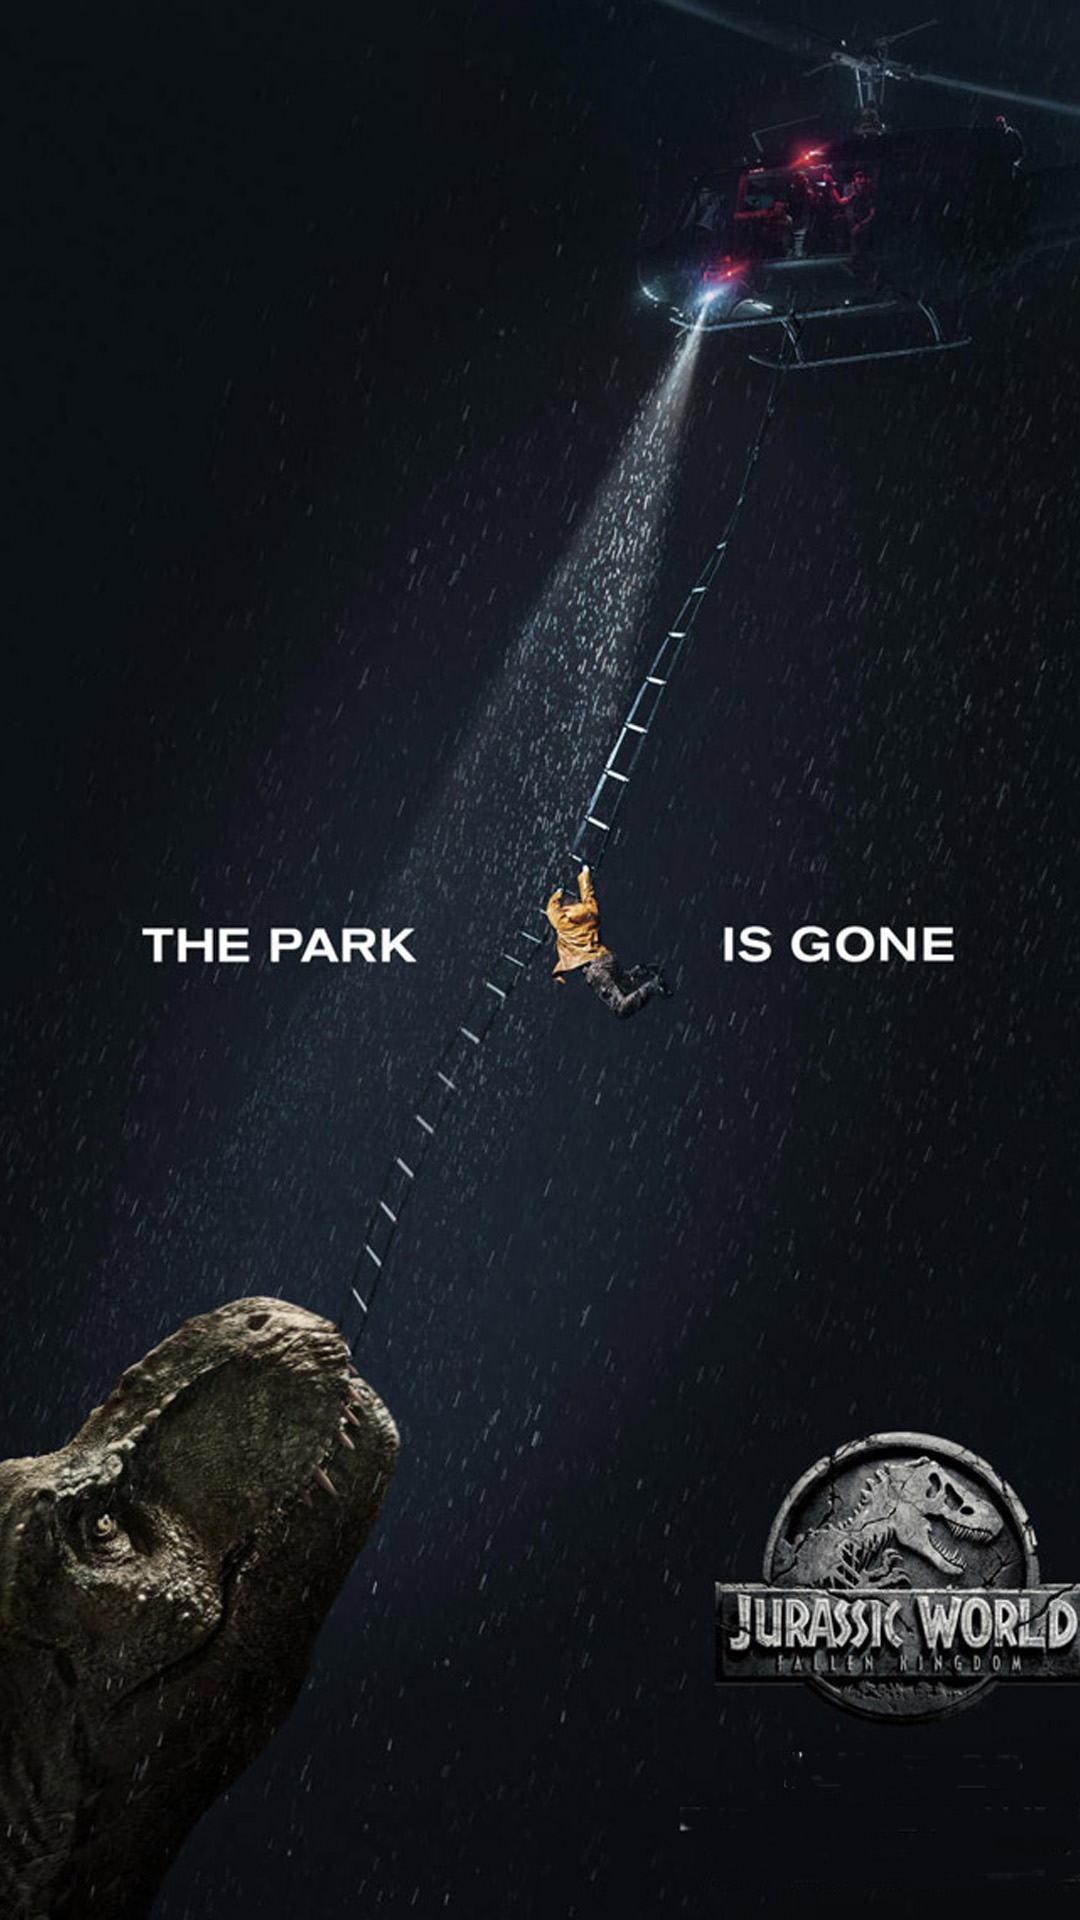 Download Wallpaper Logo Jurassic World - The-Park-Is-Gone-Jurassic-World-Fallen-Kingdom-HD-Mobile-Wallpaper  Collection_77641.jpg